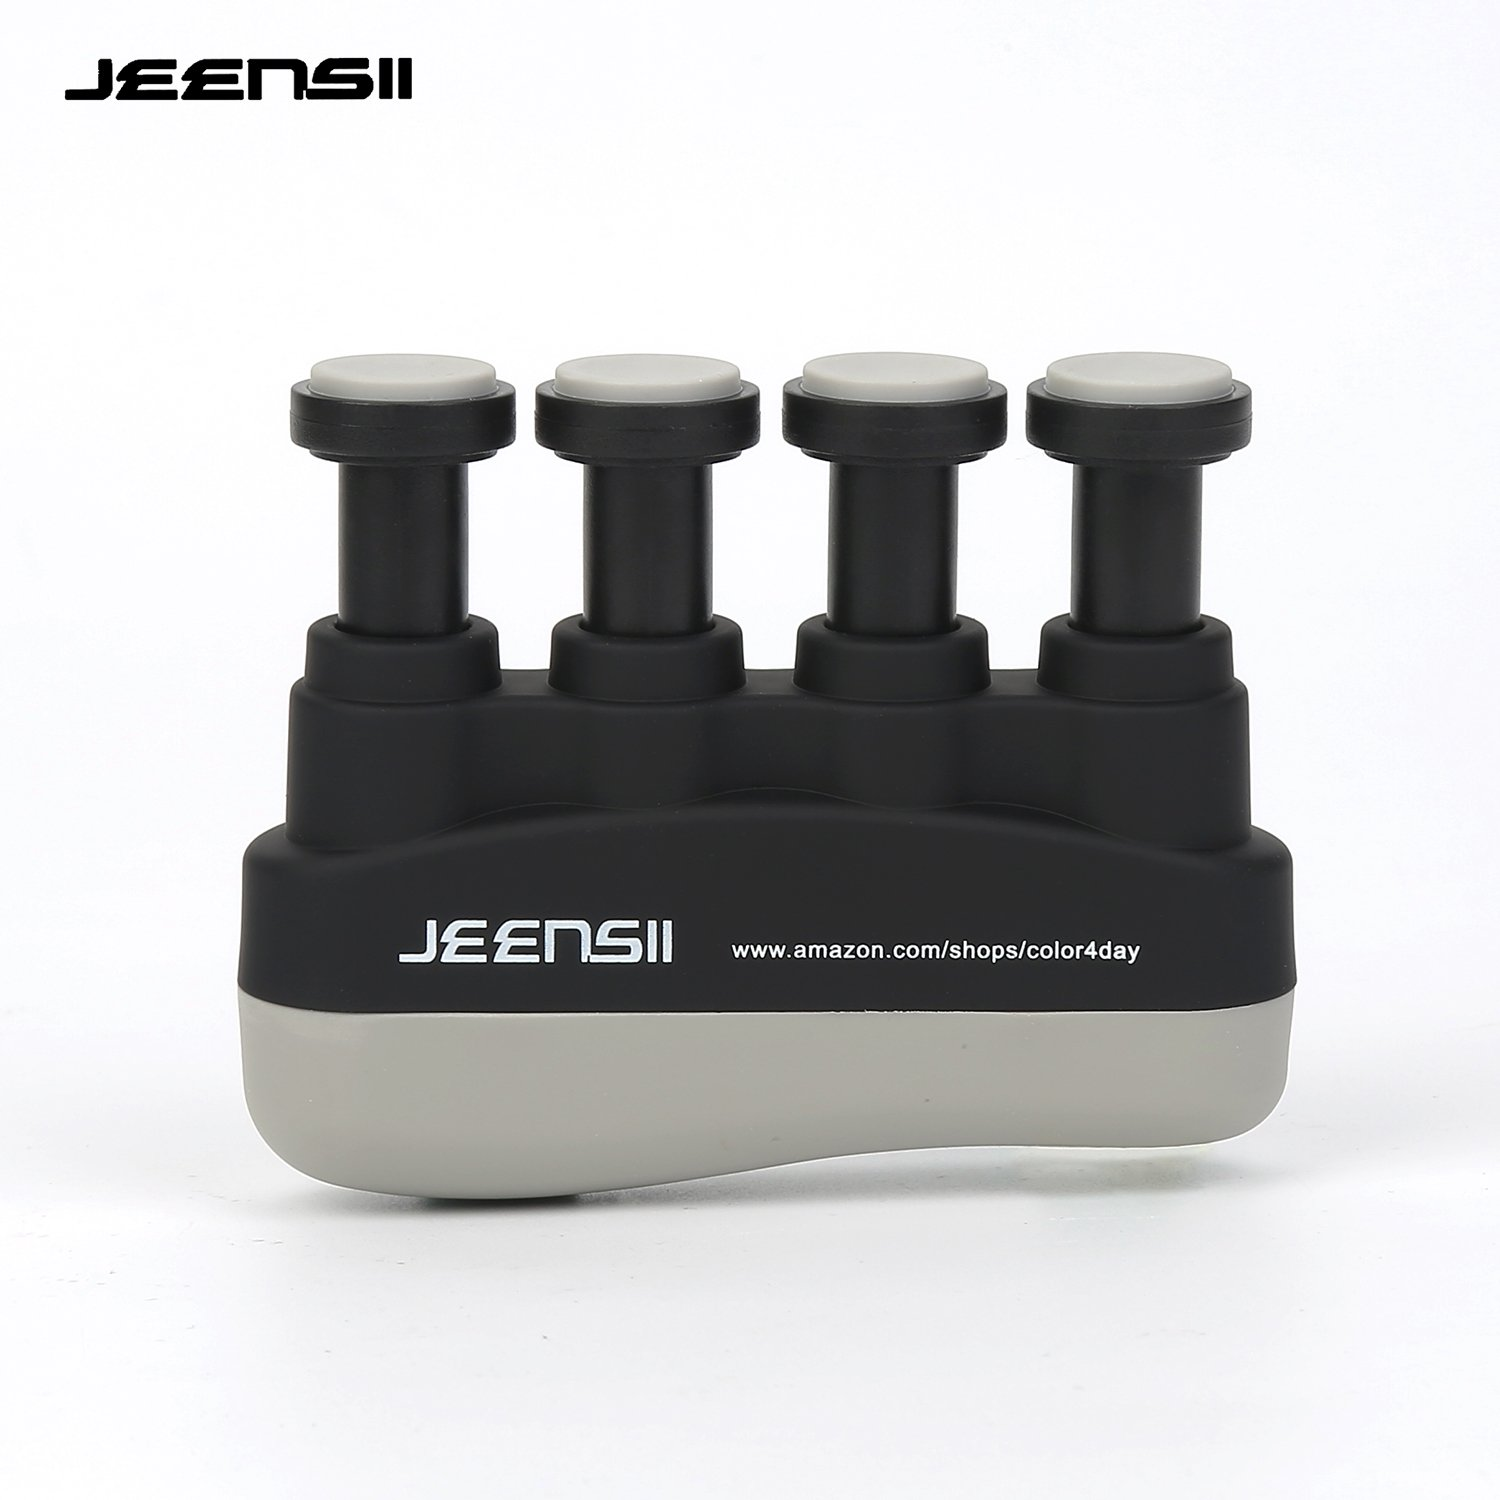 JEENSII Finger Strength Grips with Adjustable Resistance 22-88 Lbs for Finger, Wrist and Arm Training